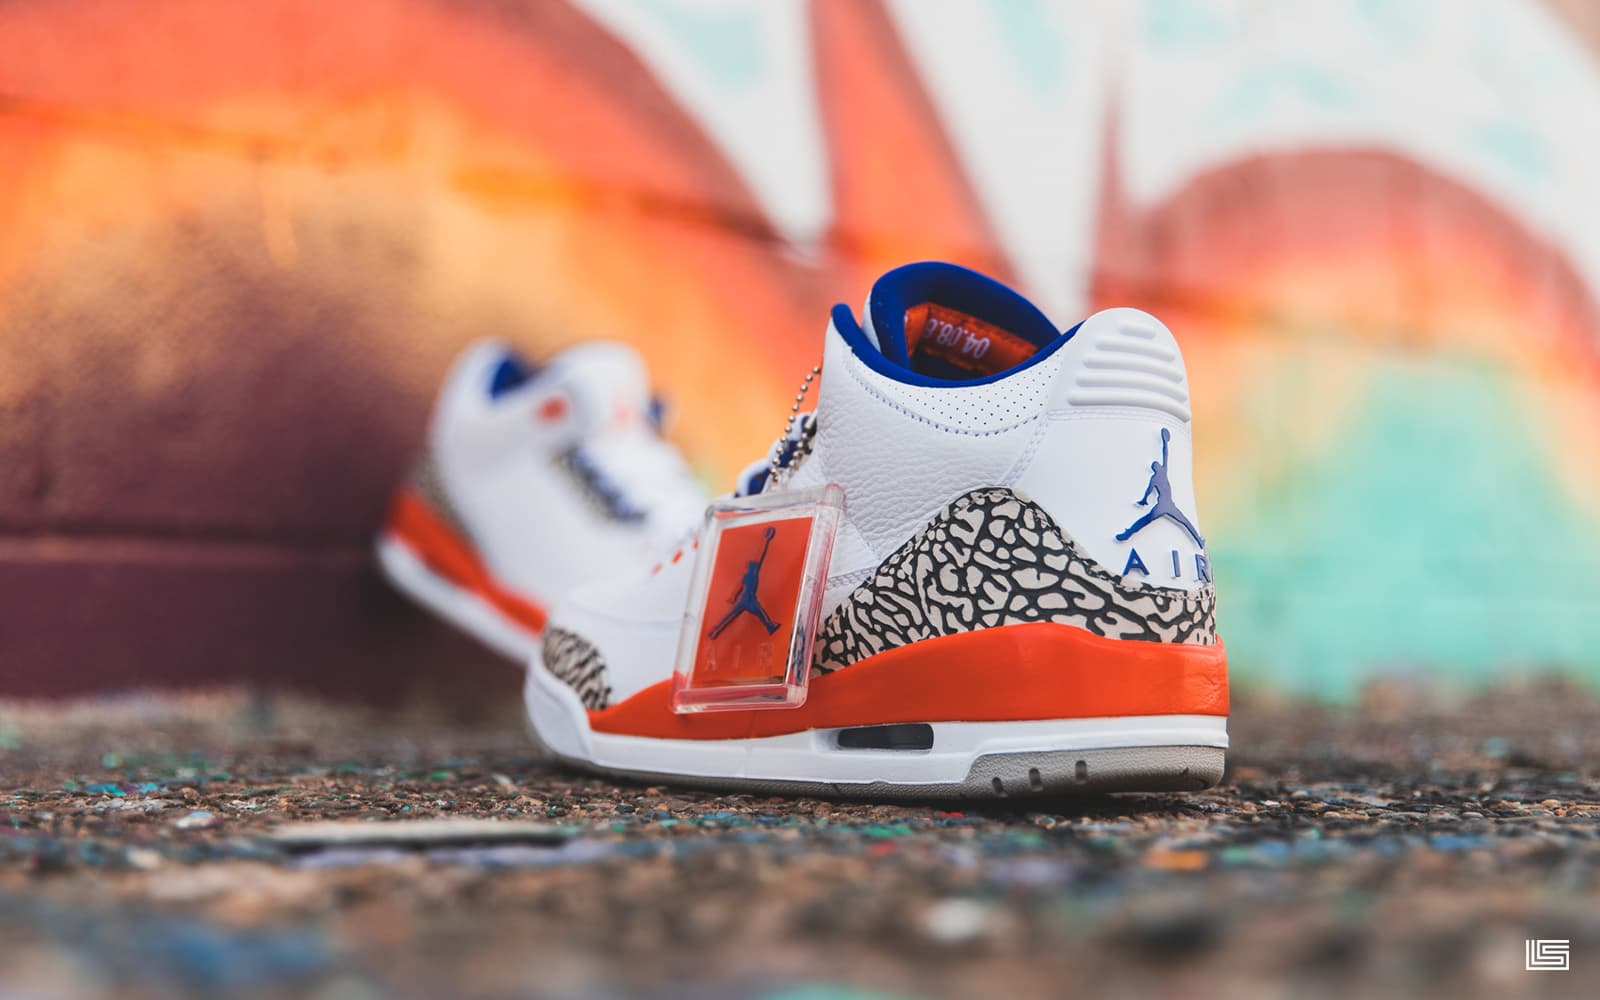 SET TO DROP: AIR JORDAN RETRO 3 'KNICKS'